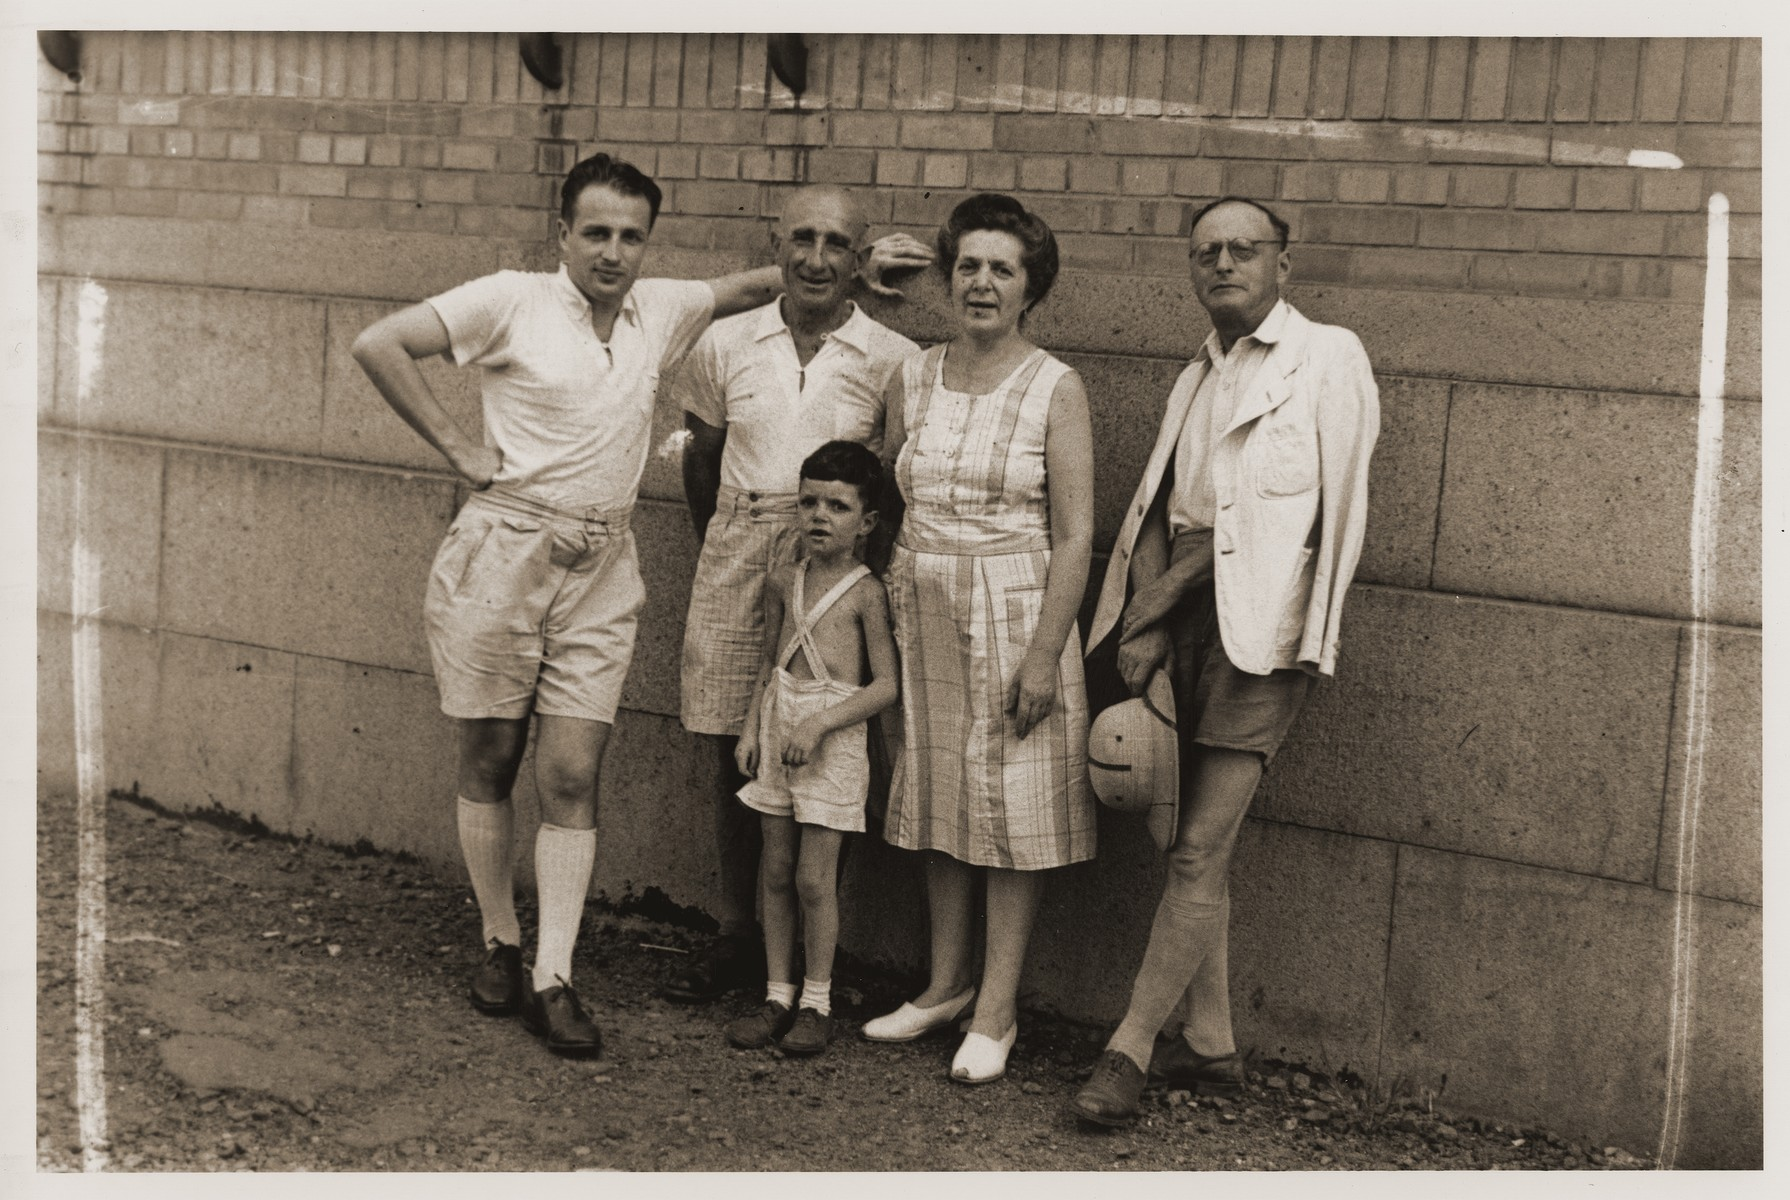 Members of the Goldstaub family pose with Harry Fiedler on a street in Shanghai.    Pictured from left to right are Eric and Adolf Goldstaub, Harry Fiedler and Camilla Goldstaub.